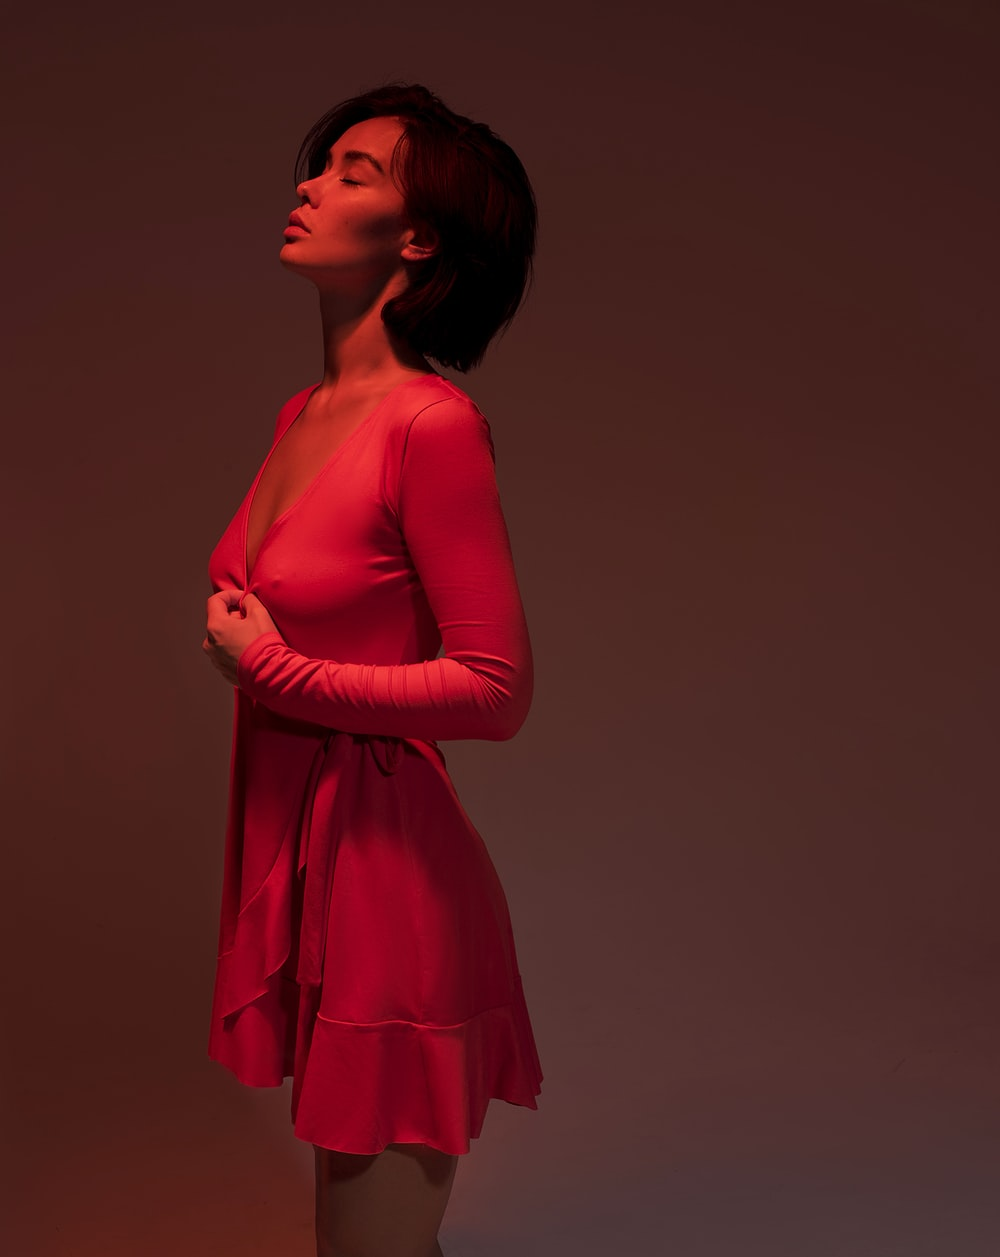 standing woman in pink long-sleeved dress